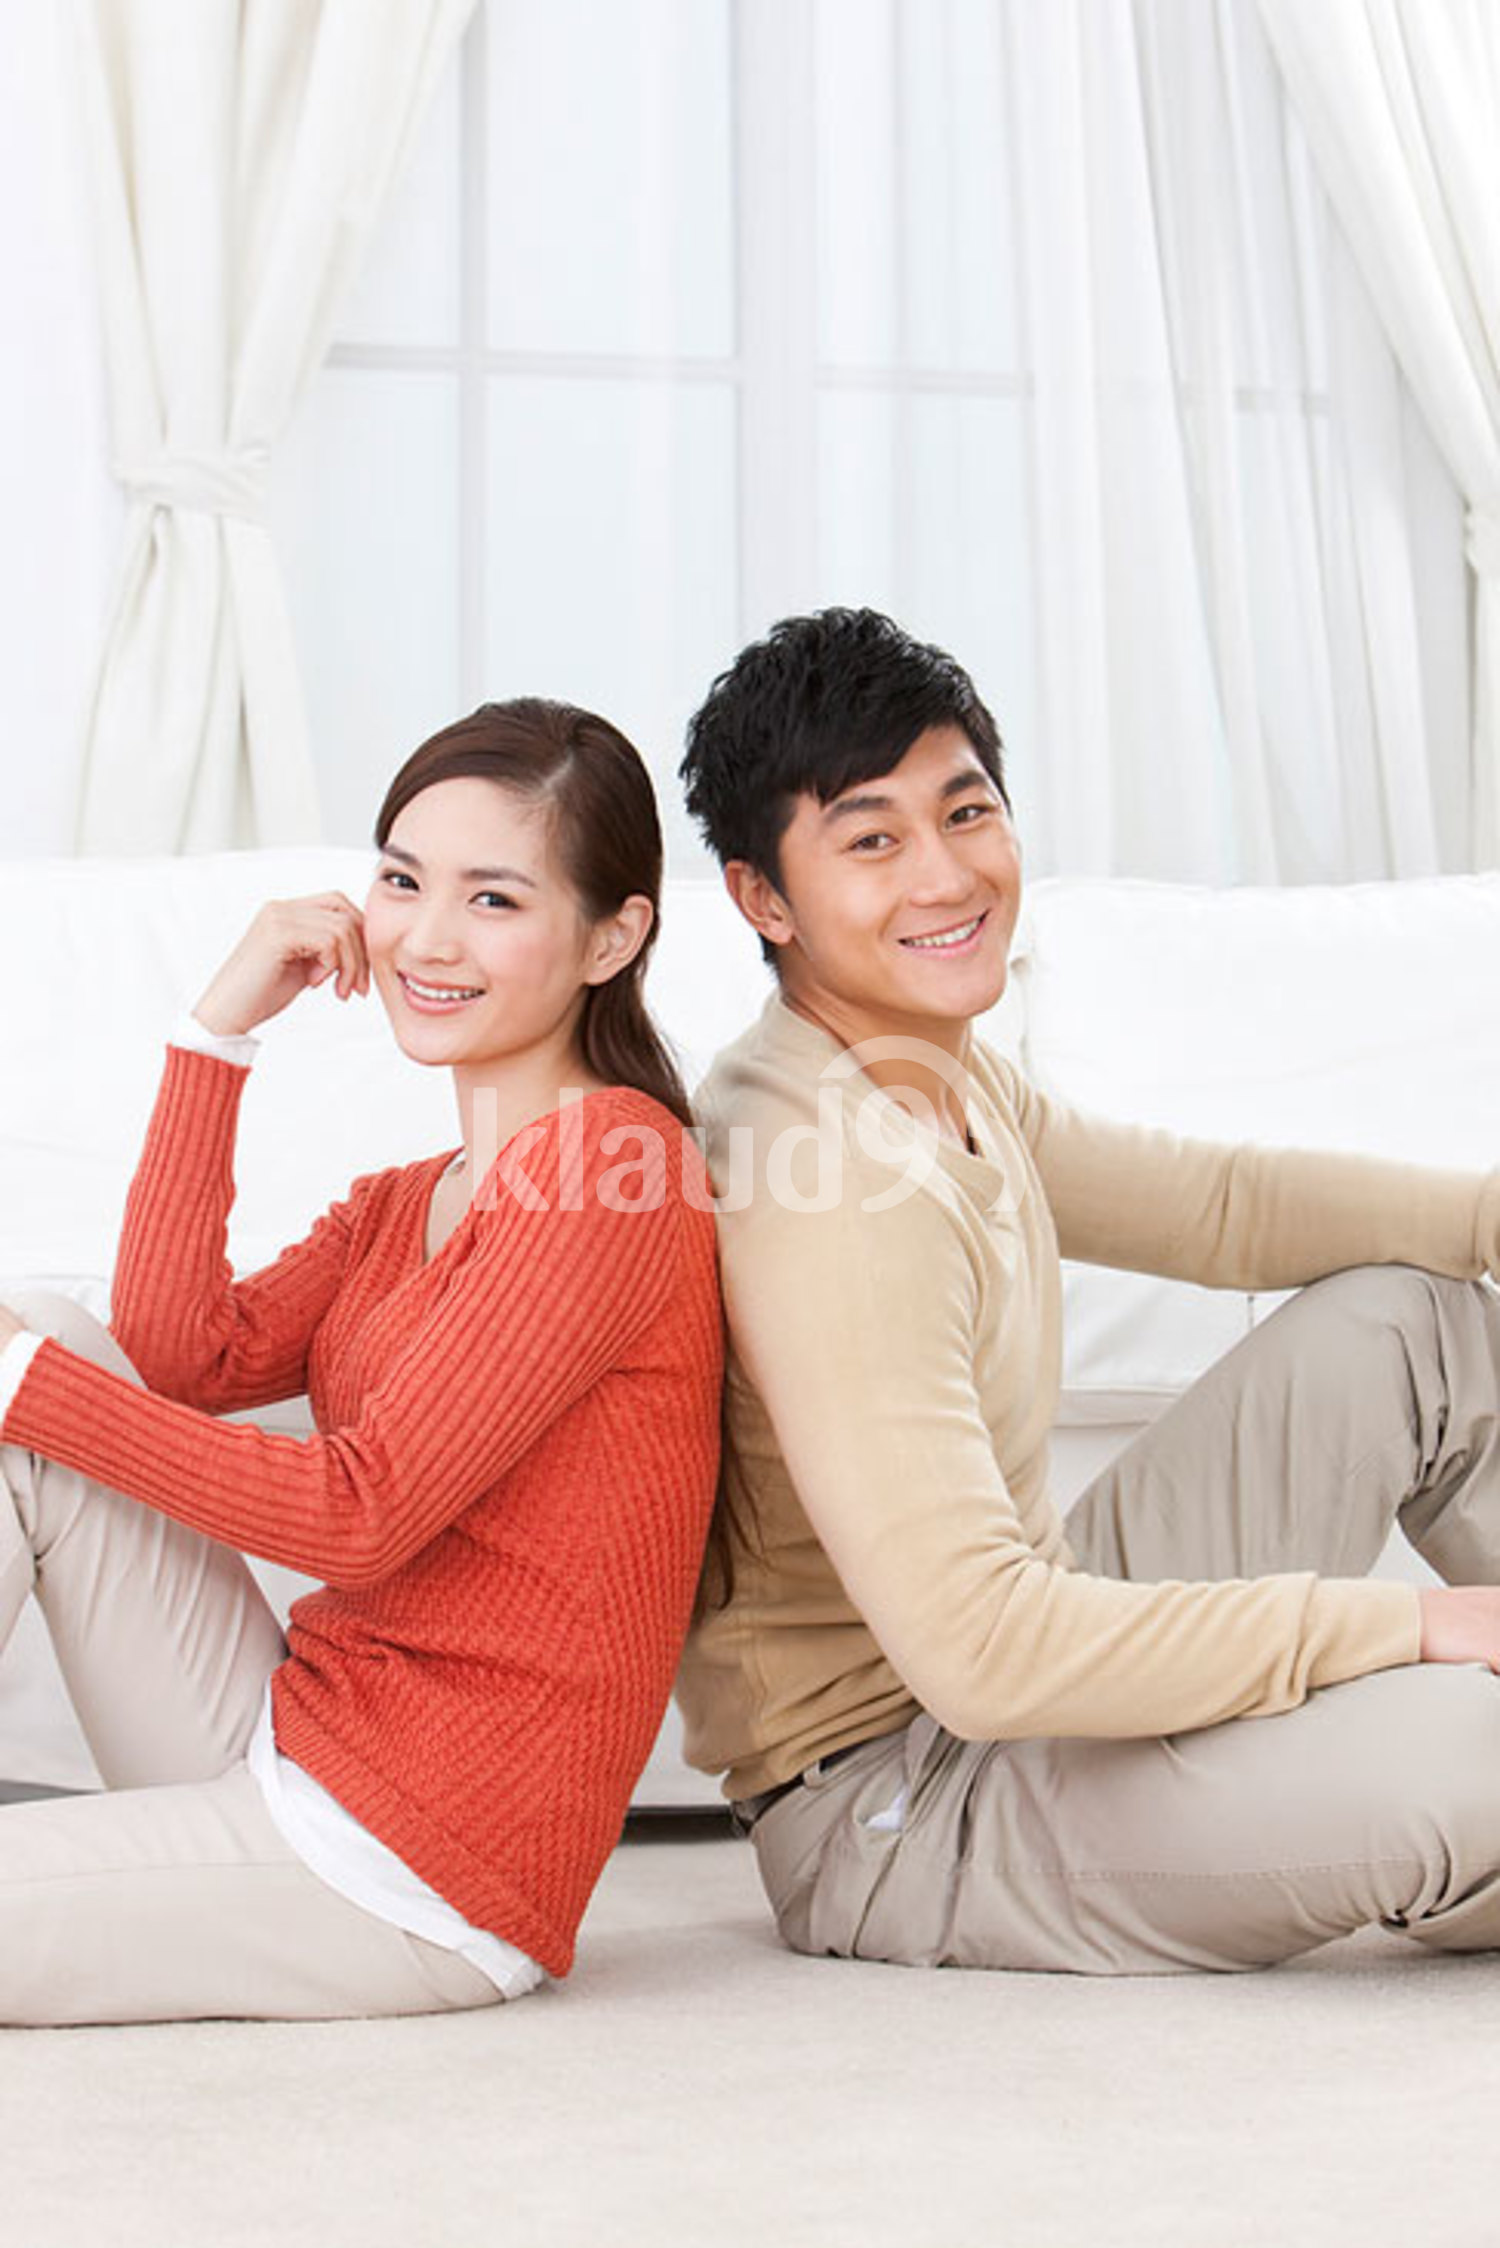 Happy young Chinese couple sitting on carpet